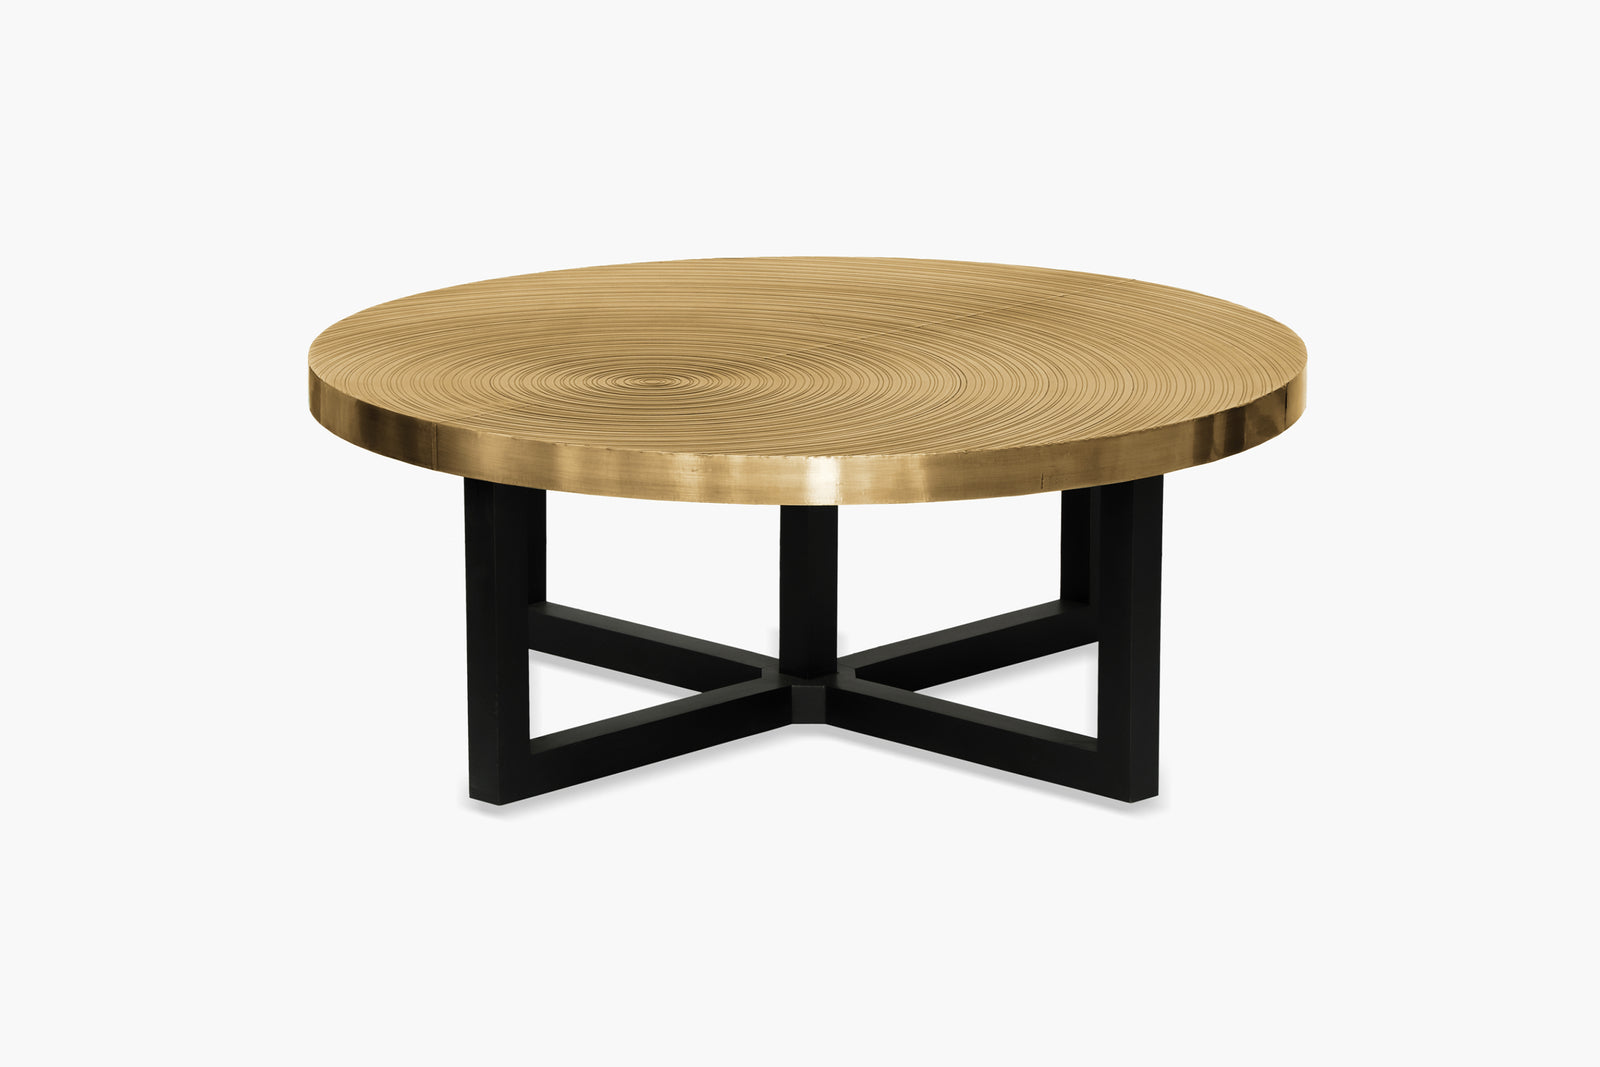 Demeter Round Coffee Table